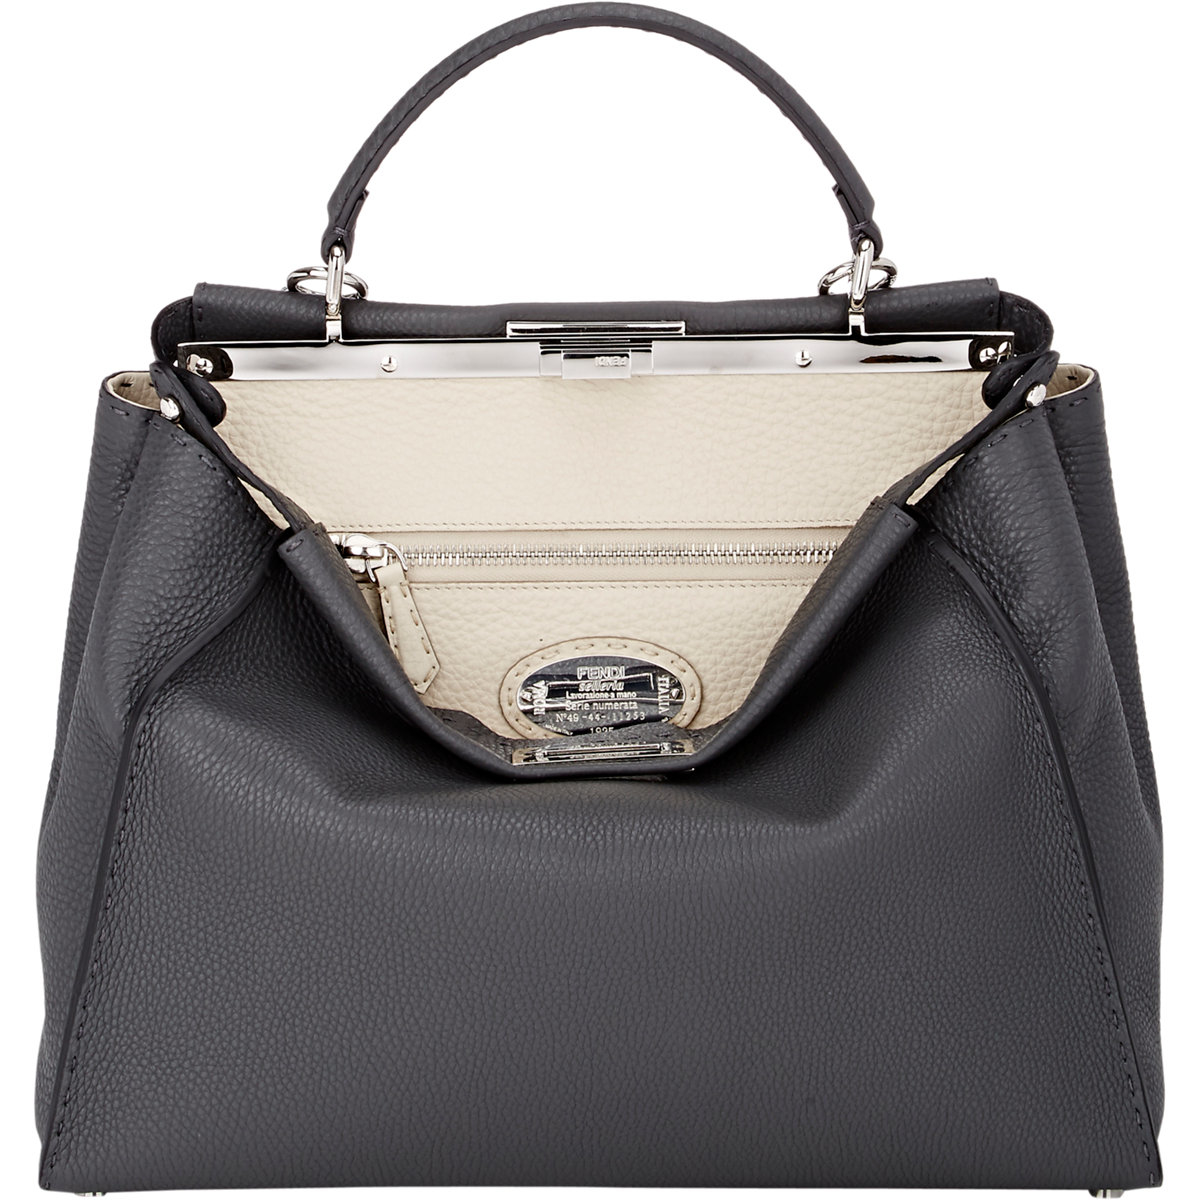 9b6c93a5055e Fendi Selleria Peekaboo Large Satchel in Black - Lyst